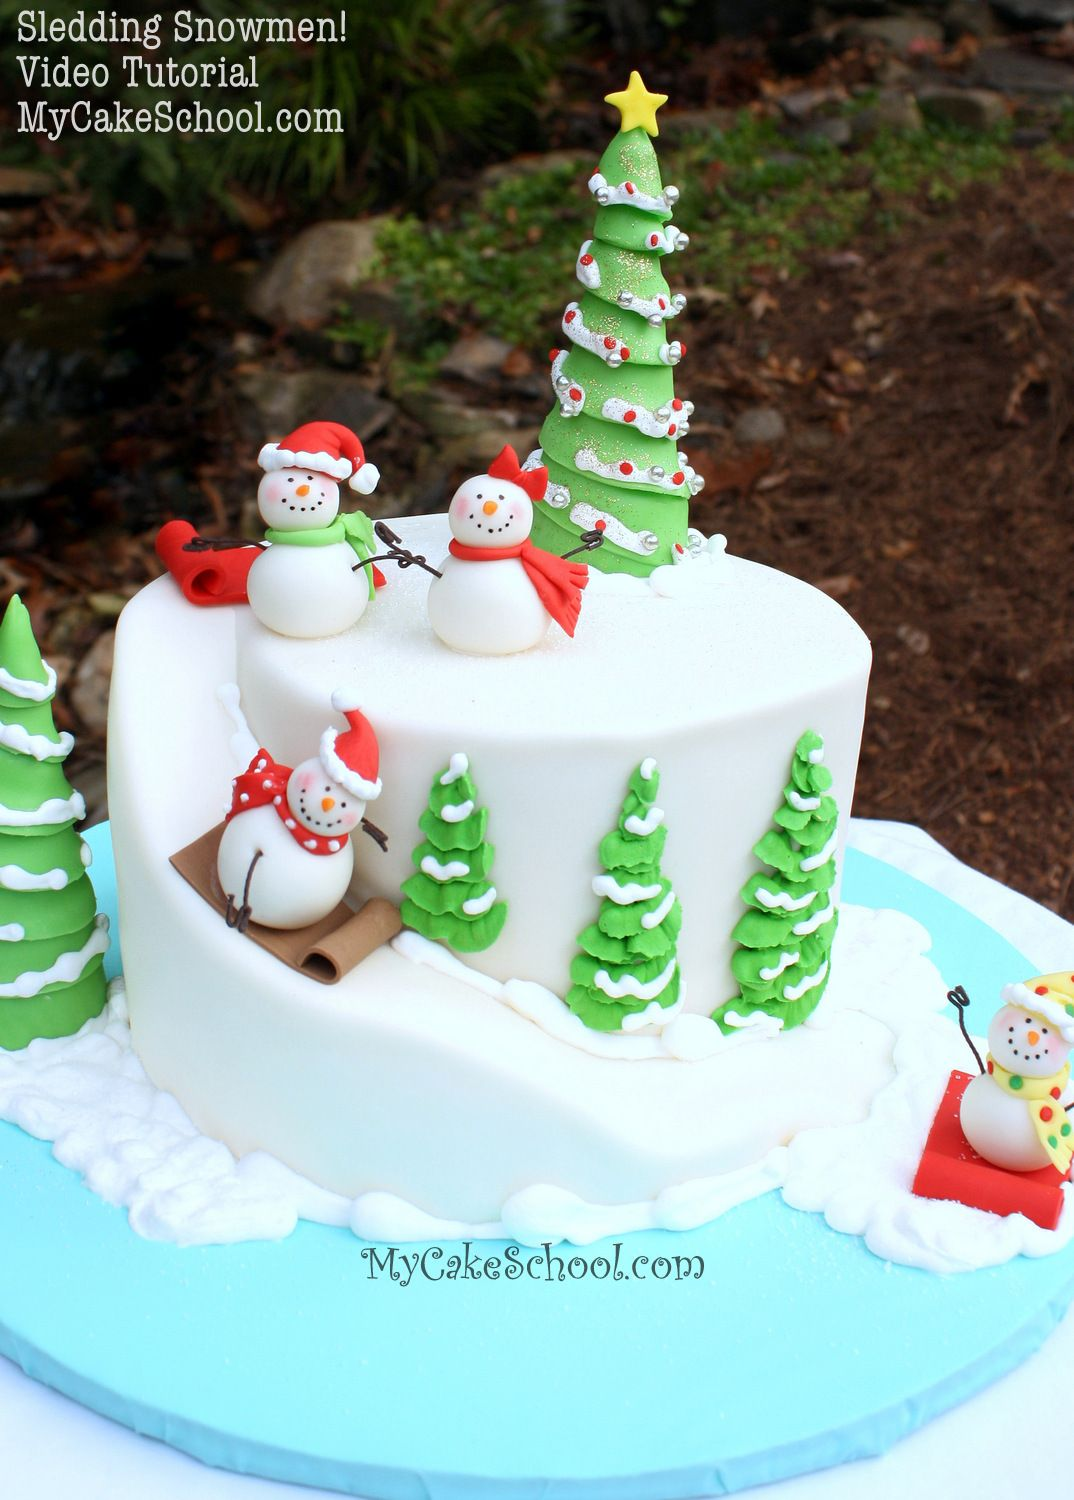 How To Make A Carved Snowman Sledding Cake